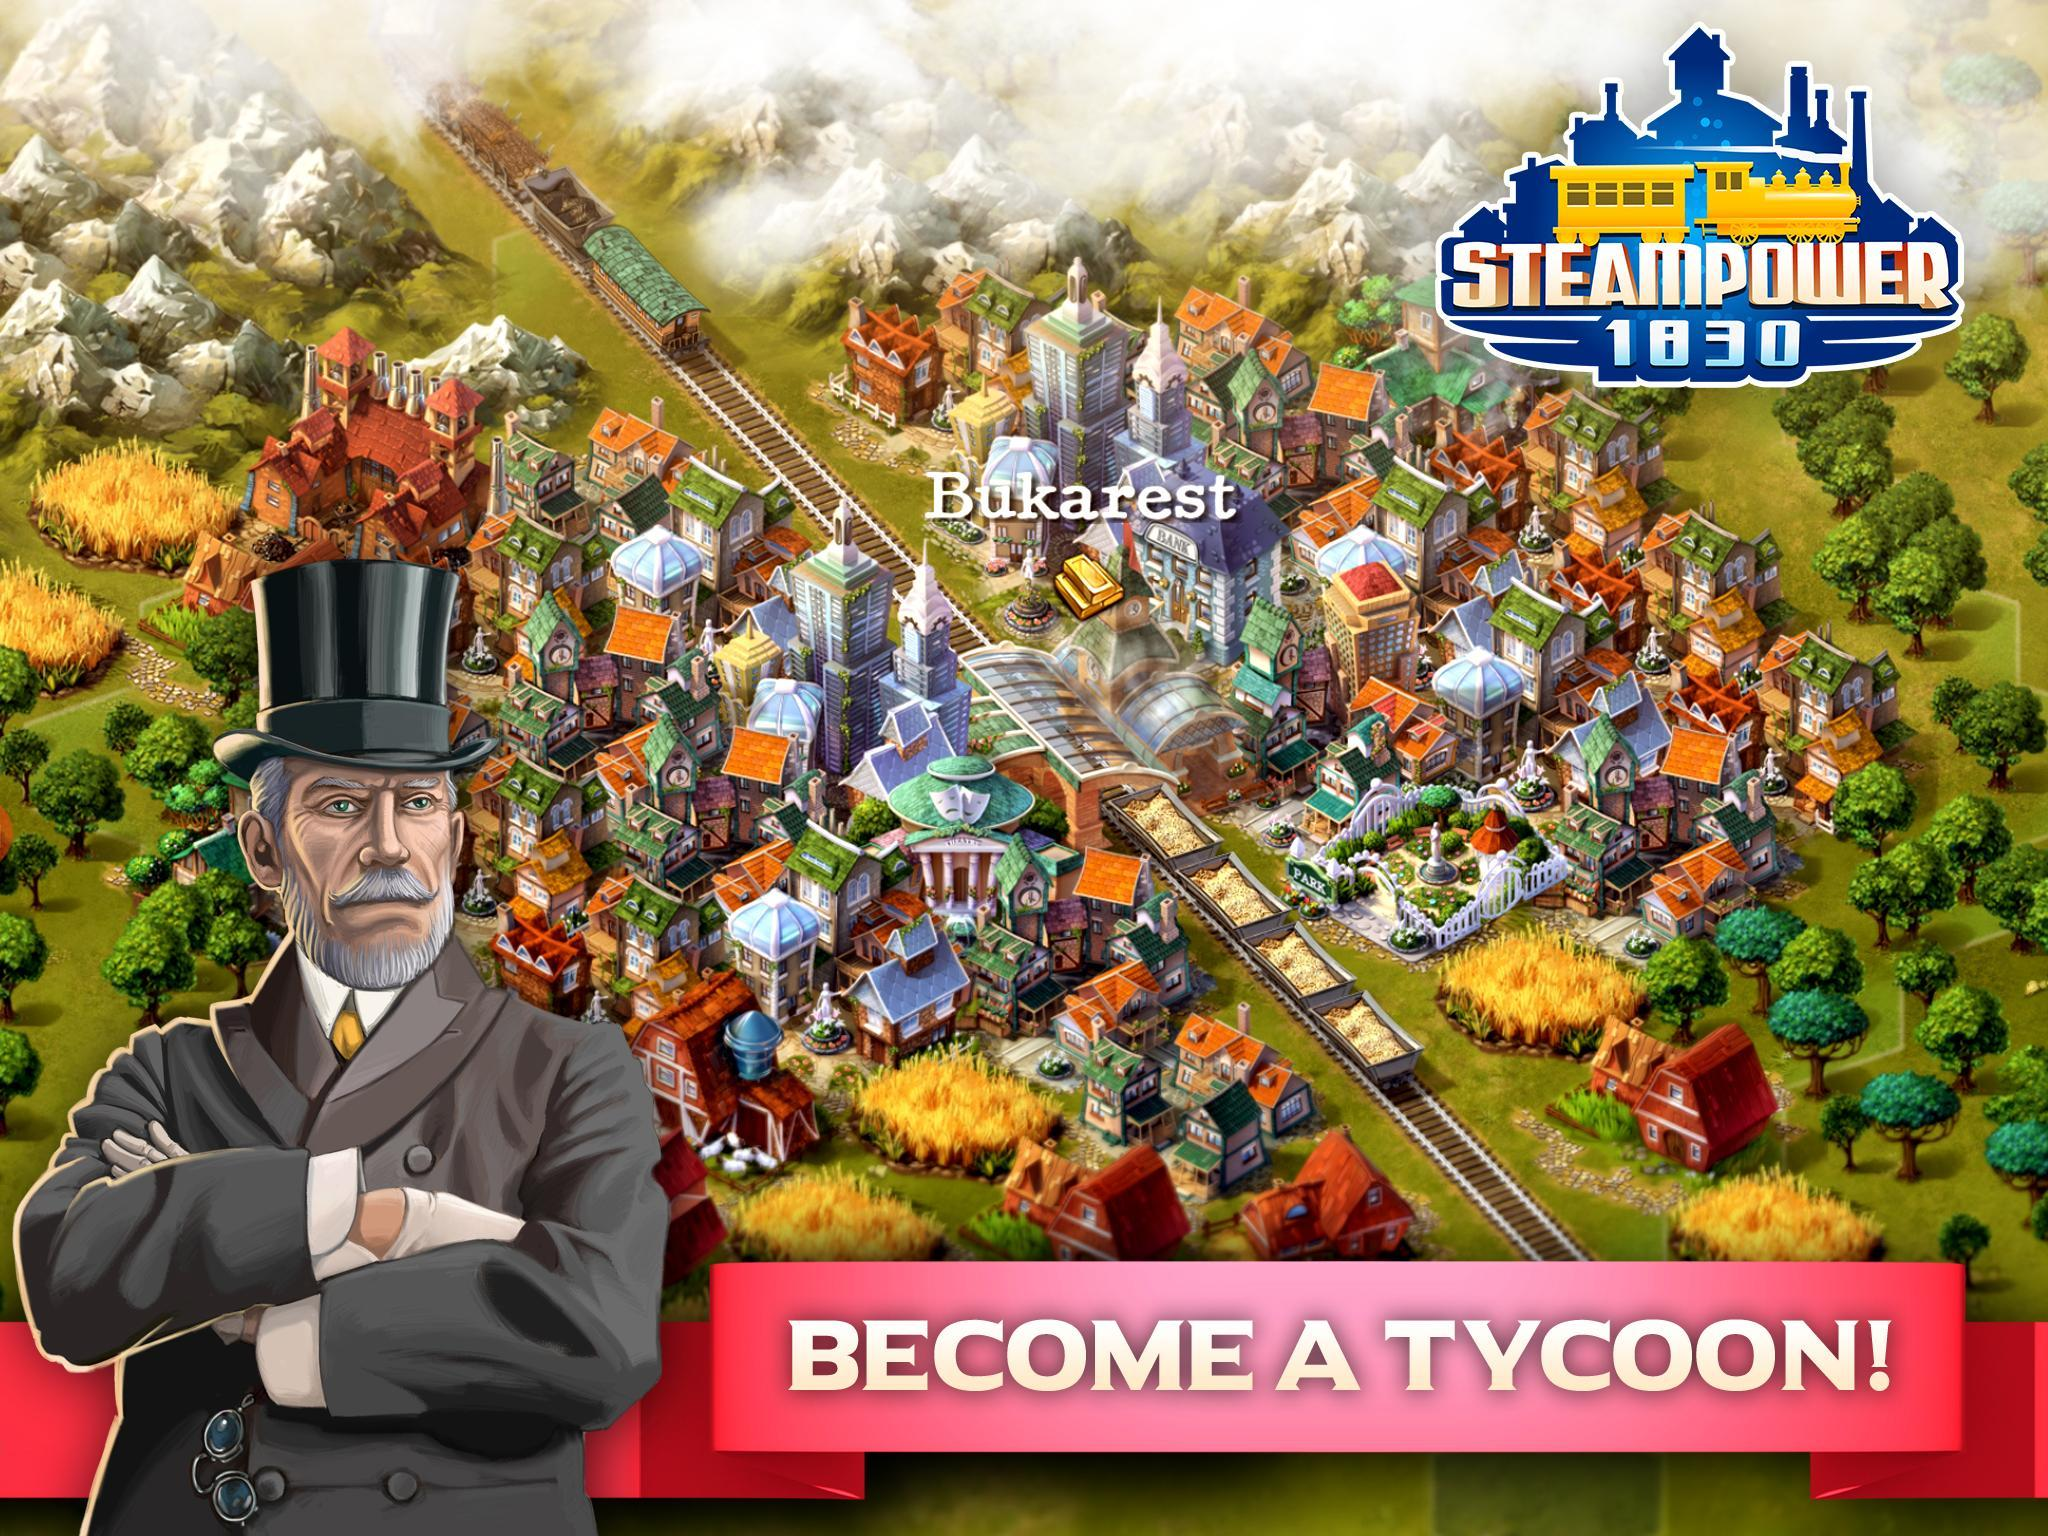 SteamPower 1830 Railroad Tycoon for Android - APK Download